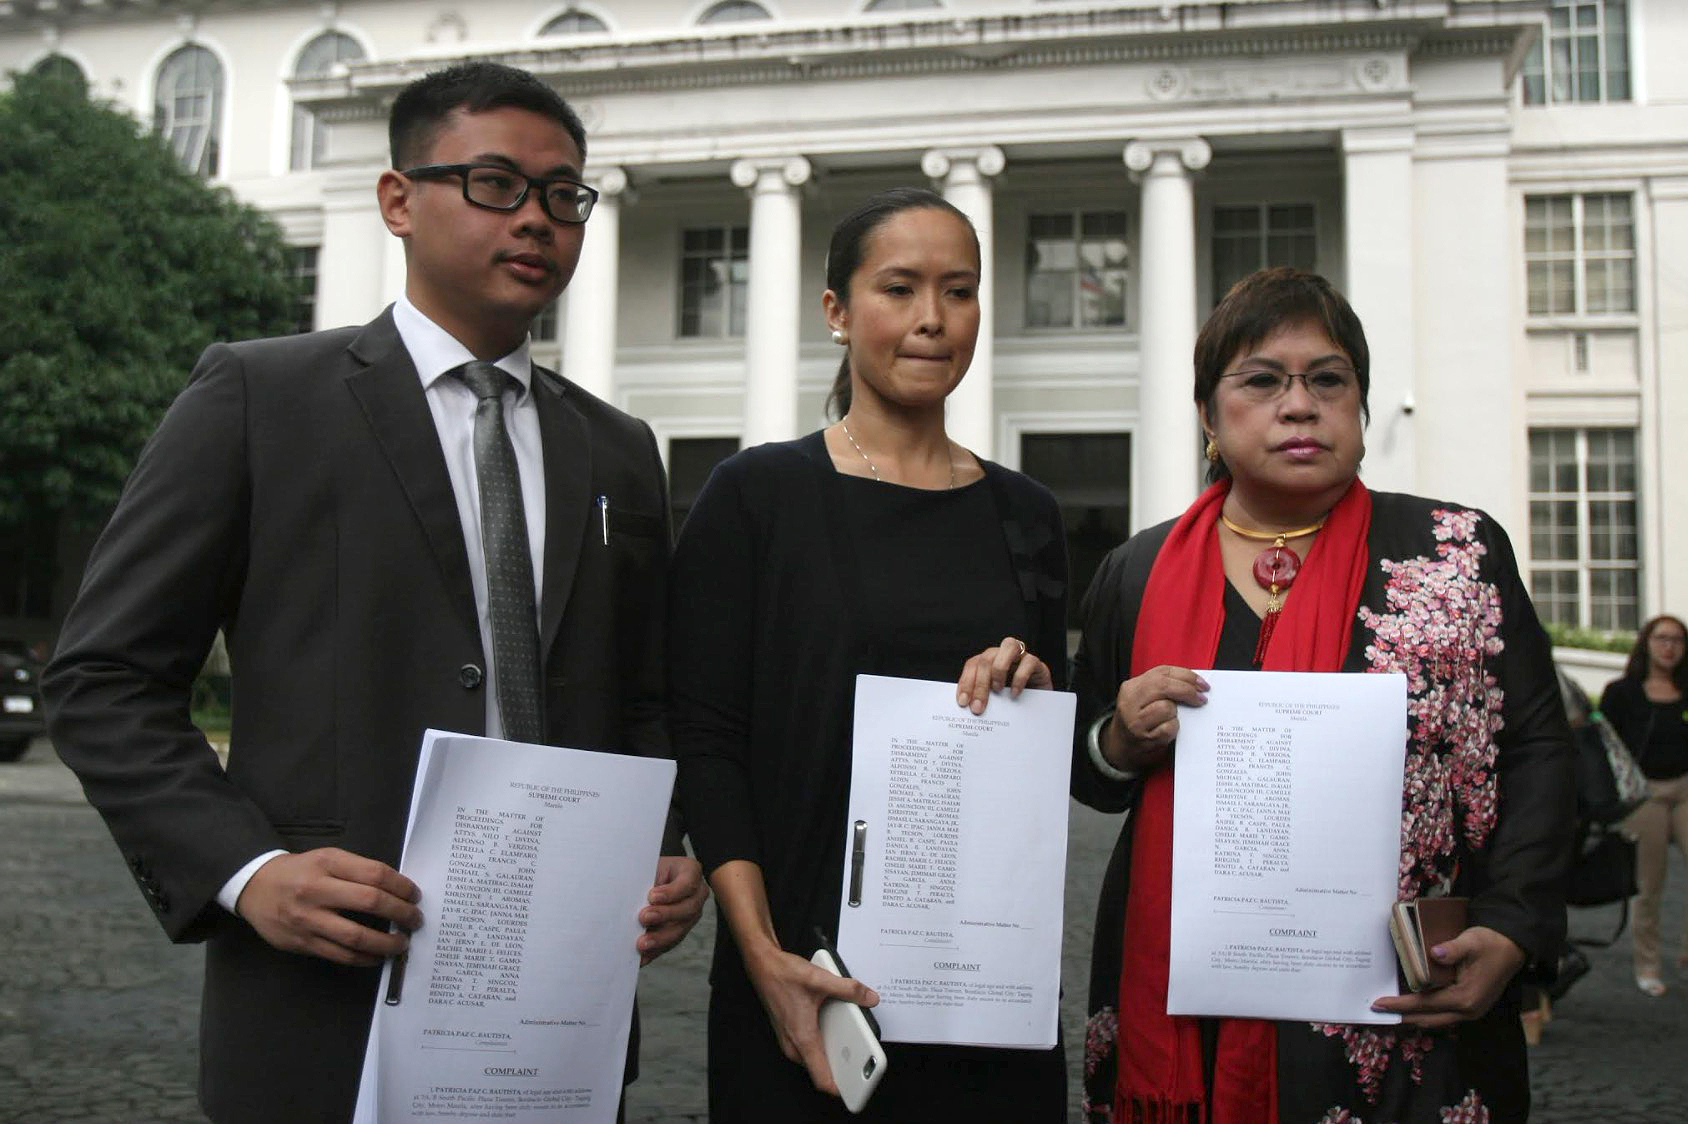 COMPLAINT. Patricia Bautista, estranged wife of COMELEC Chair Andy Bautista, and lawyer Lorna Kapunan file a disbarment complaint before the Supreme Court (SC) against UST Law Dean Nilo Divina and 20 other lawyers from the Divina law firm on September 26, 2017. Photo by Inoue Jaena/Rappler